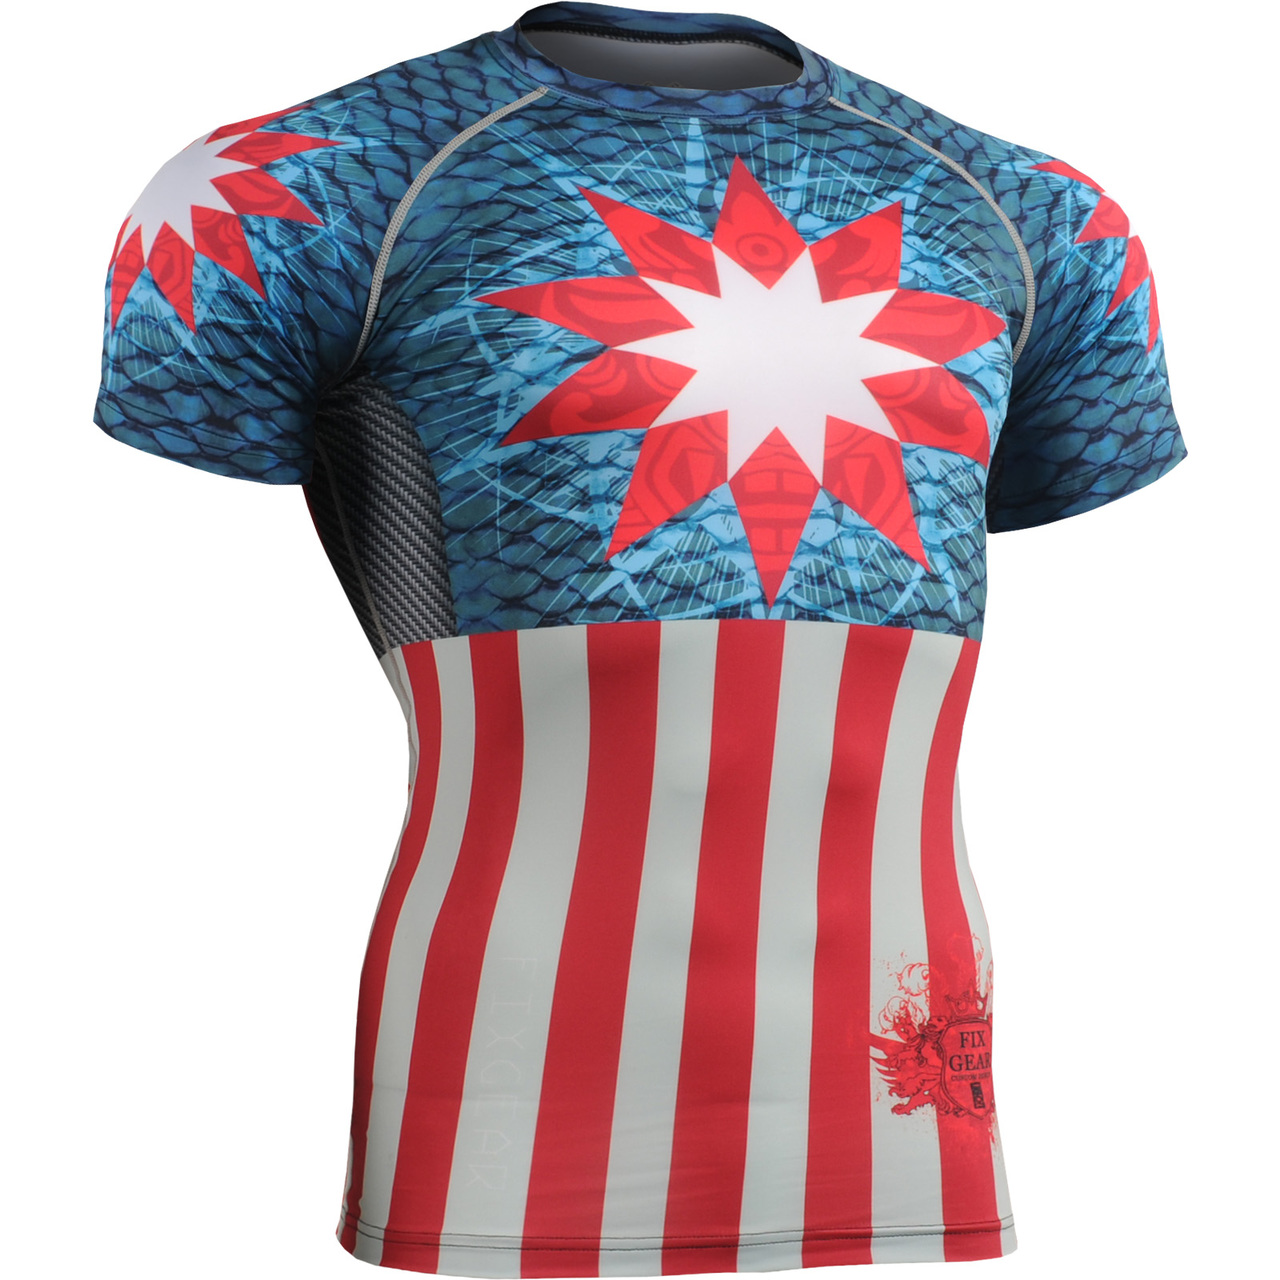 FIXGEAR CFS-73 Compression Base Layer Short Sleeve Shirts Workout Fitness MMA